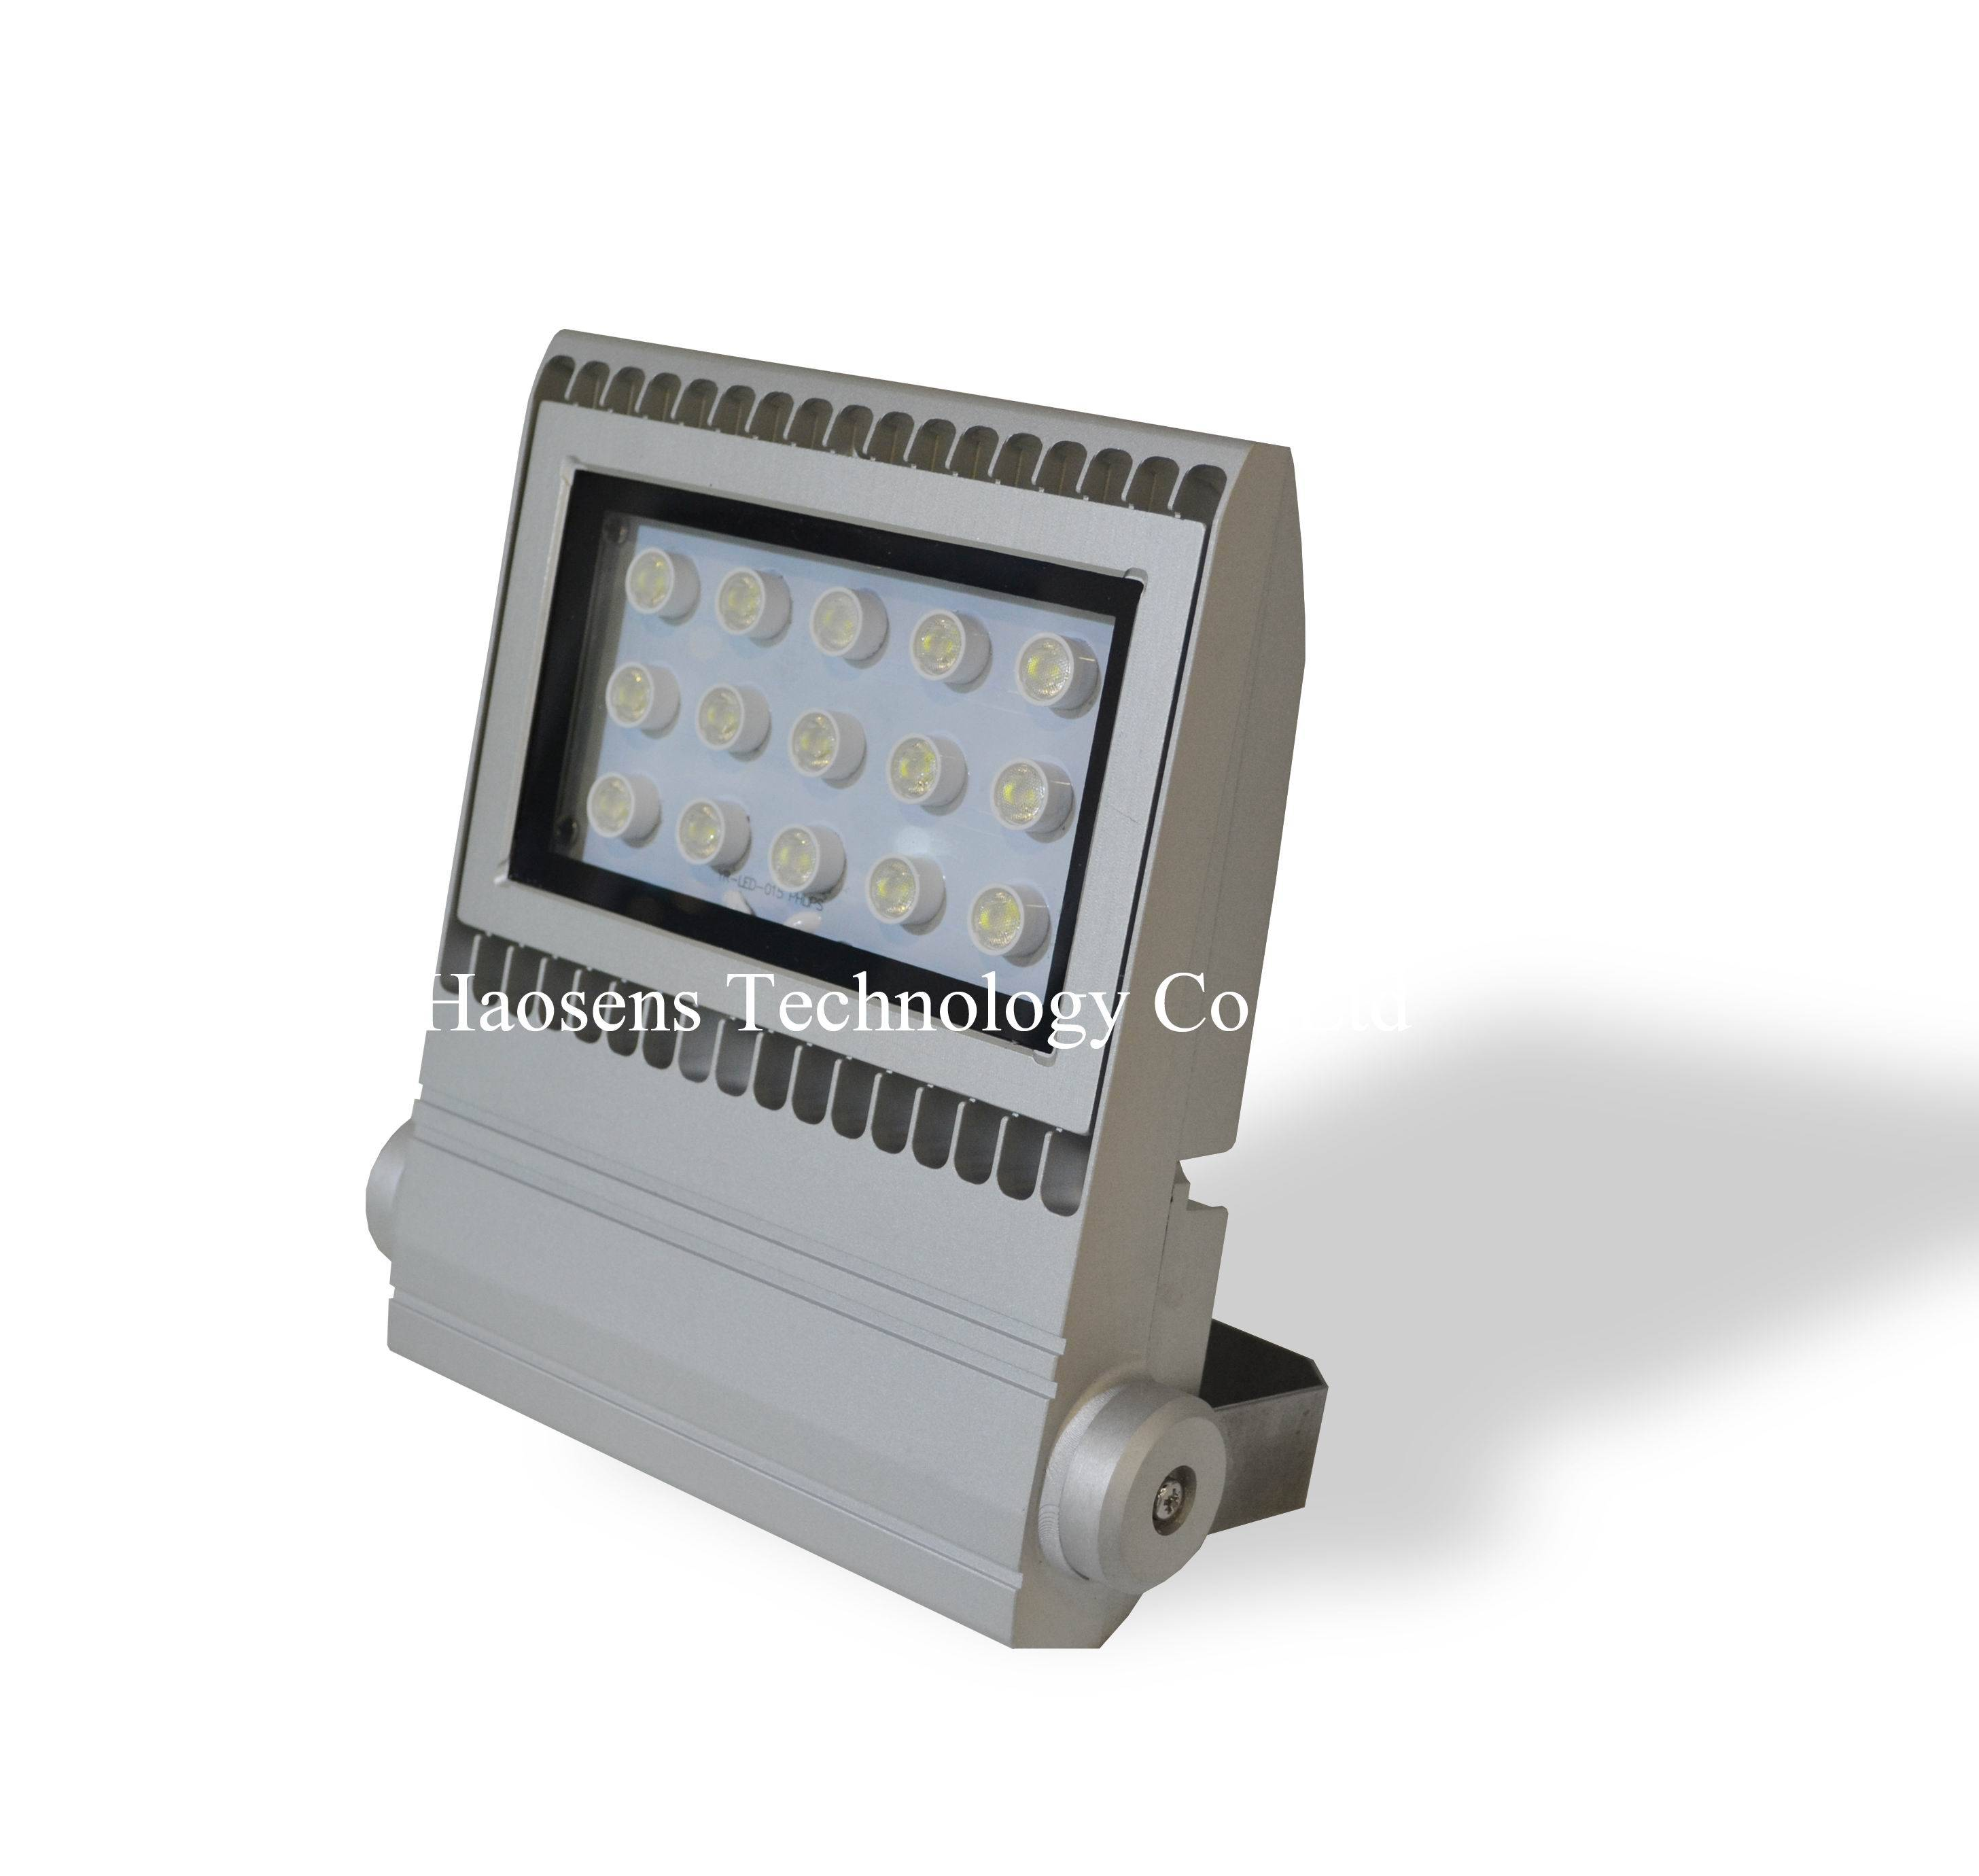 10-50W LED Flood Light for Outdoor Lighting, CE, RoHS, SAA, IP65